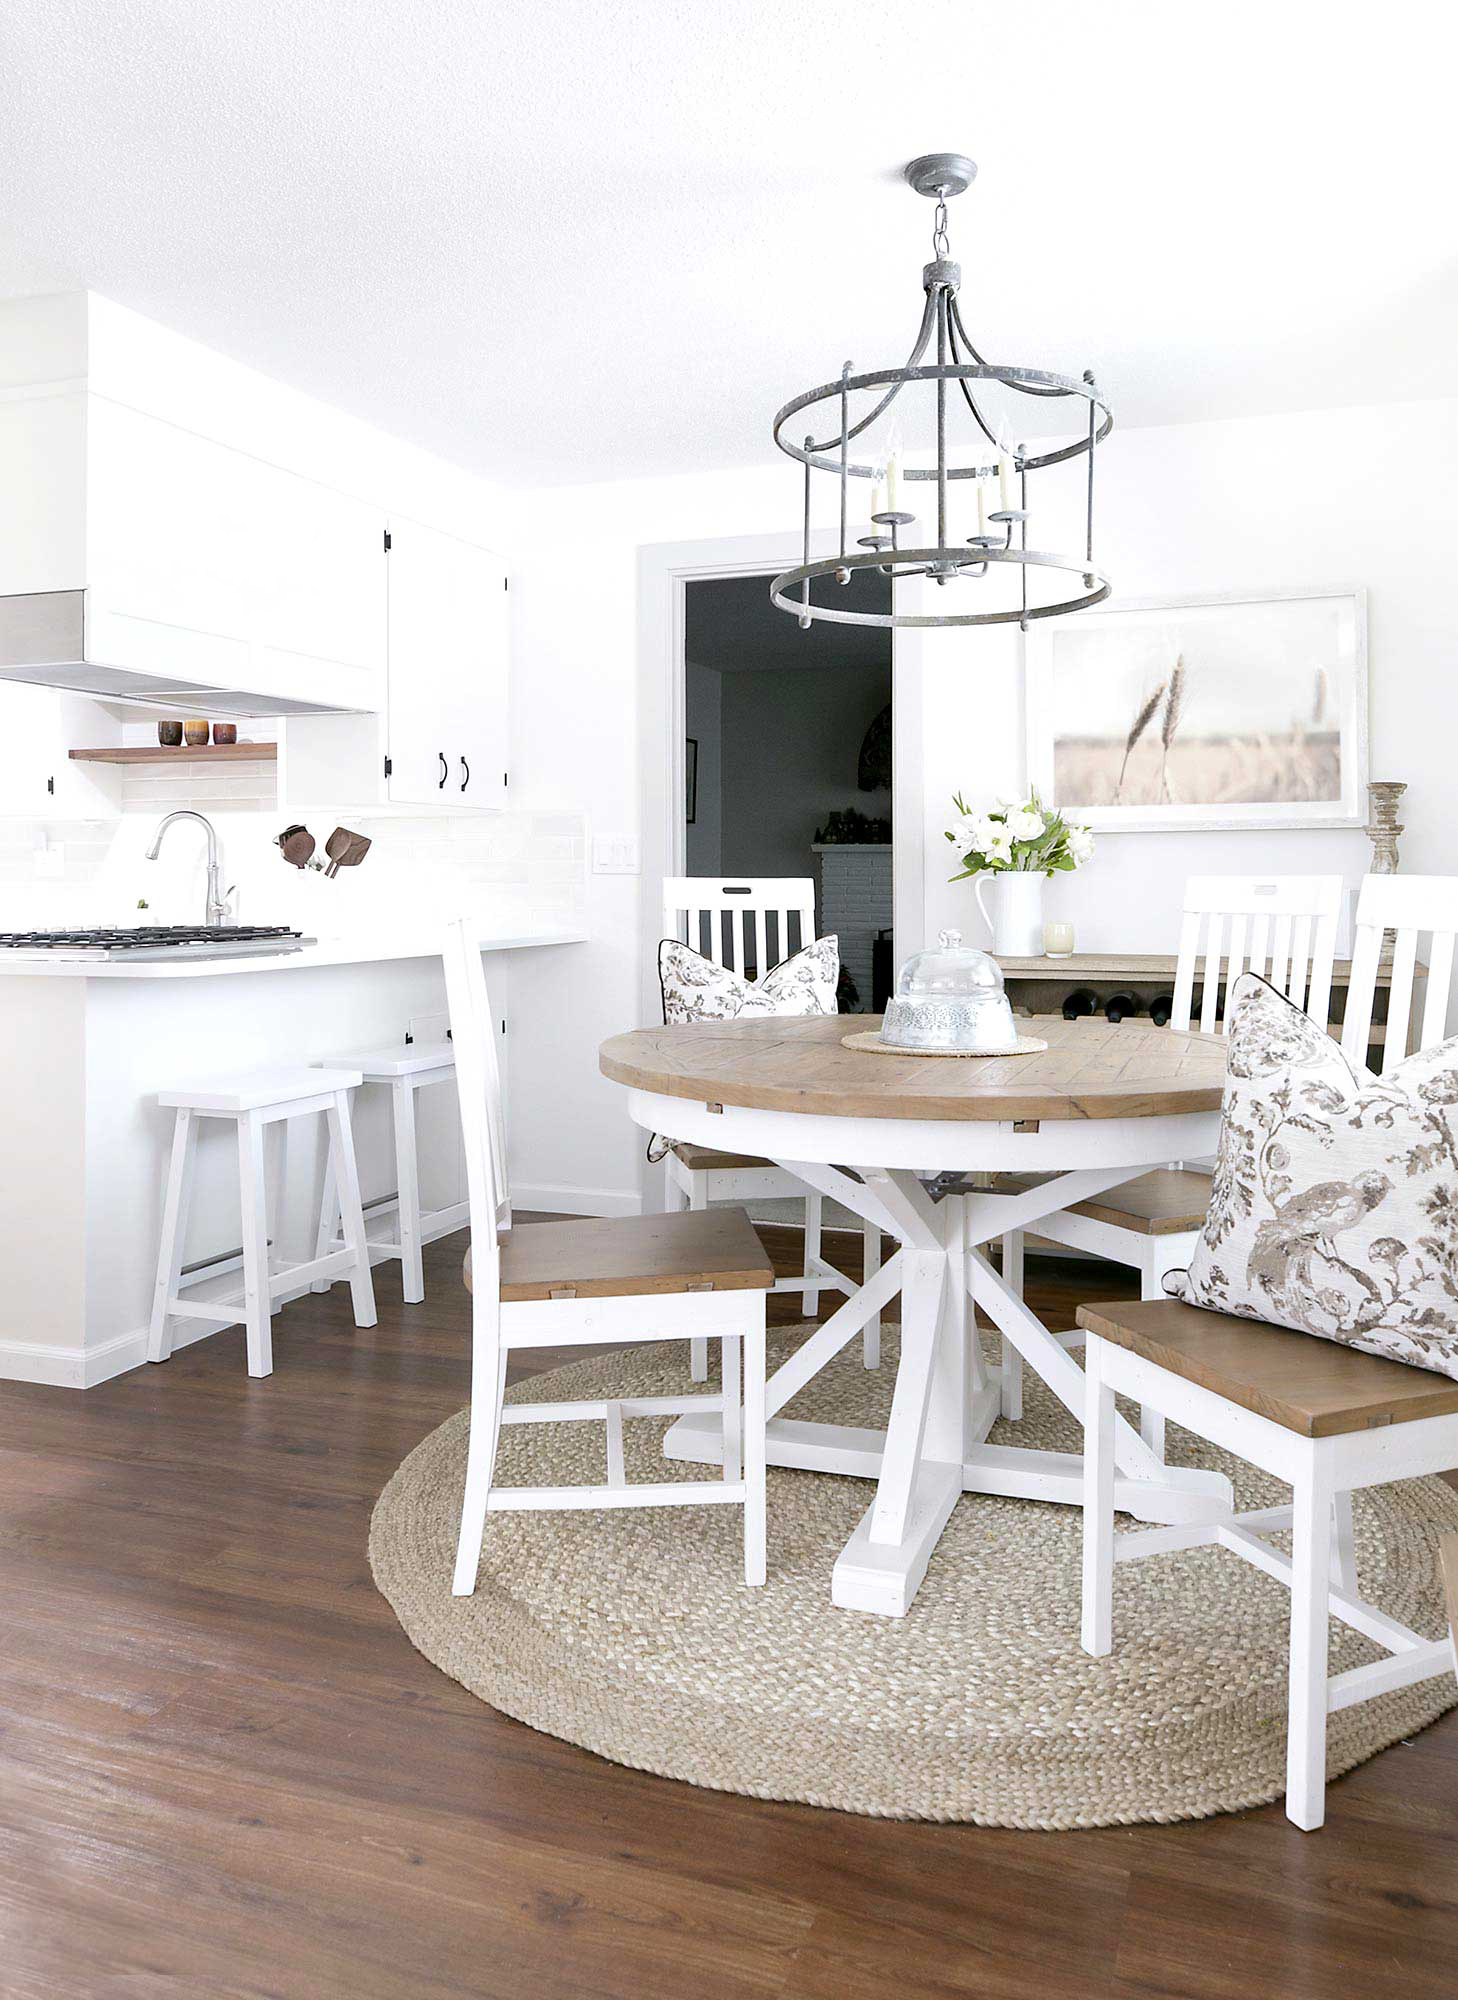 Vintage Farmhouse Kitchen and Dining Nook